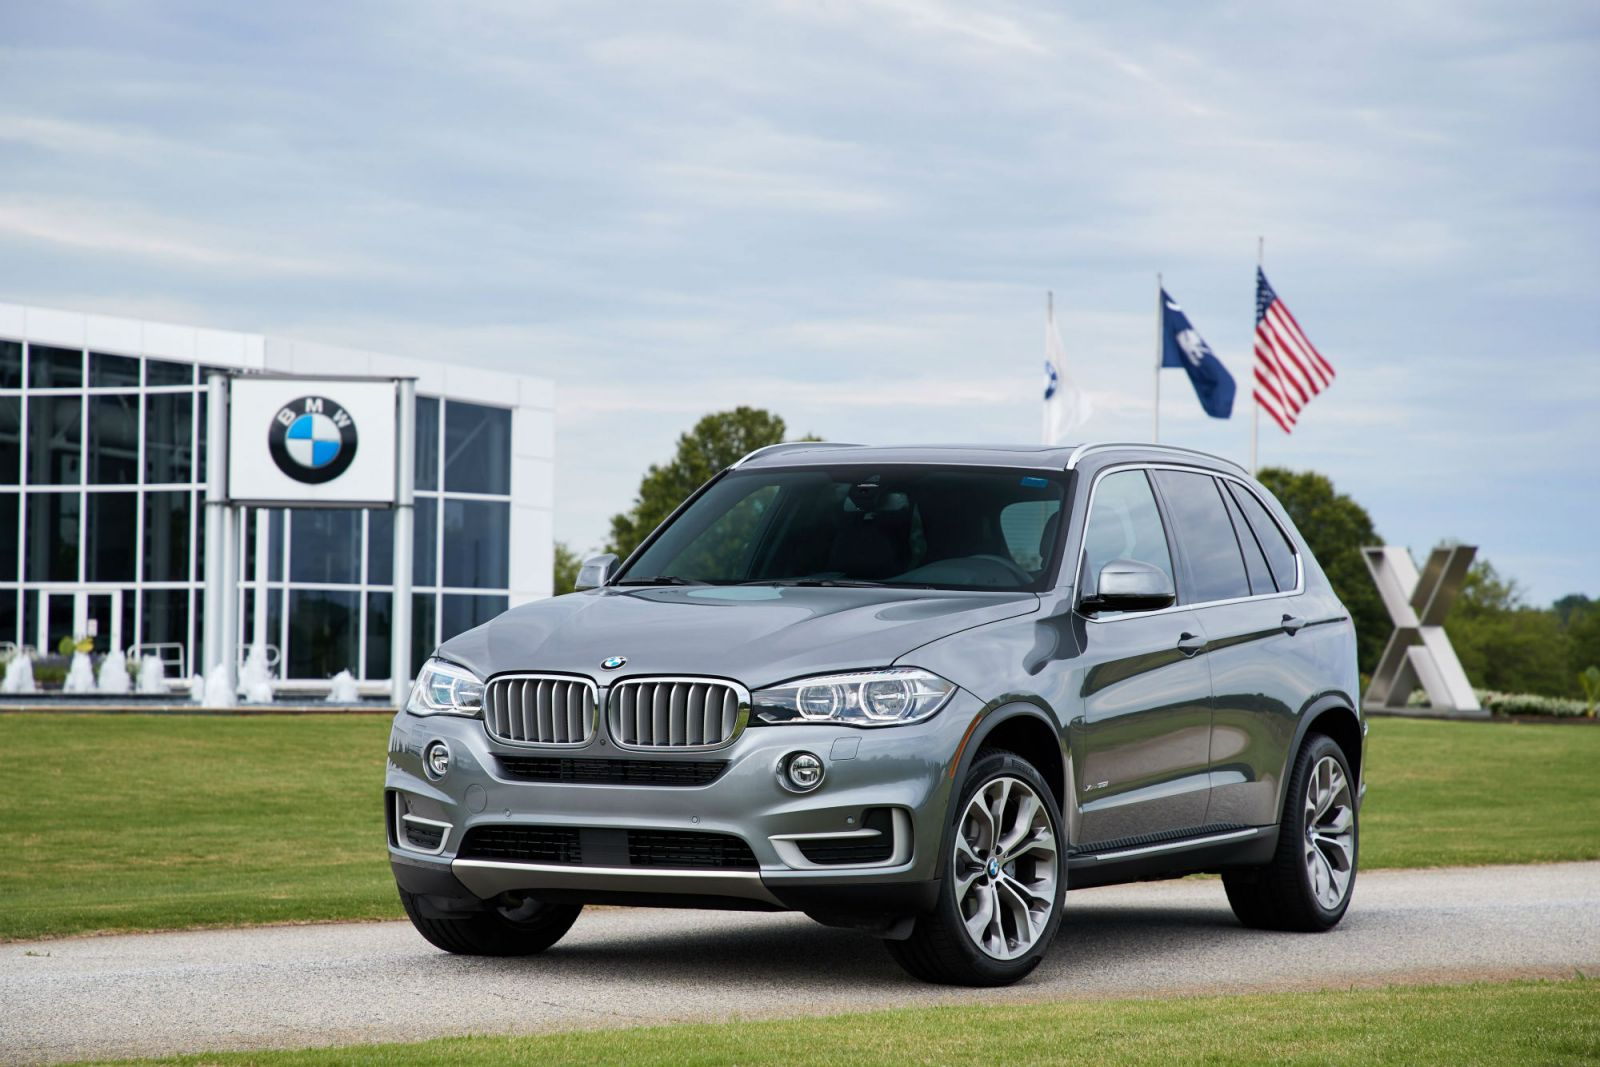 BMW's new X3 model will be equipped with the M sport package — the only X3 model to have the package. (Photo/Provided)